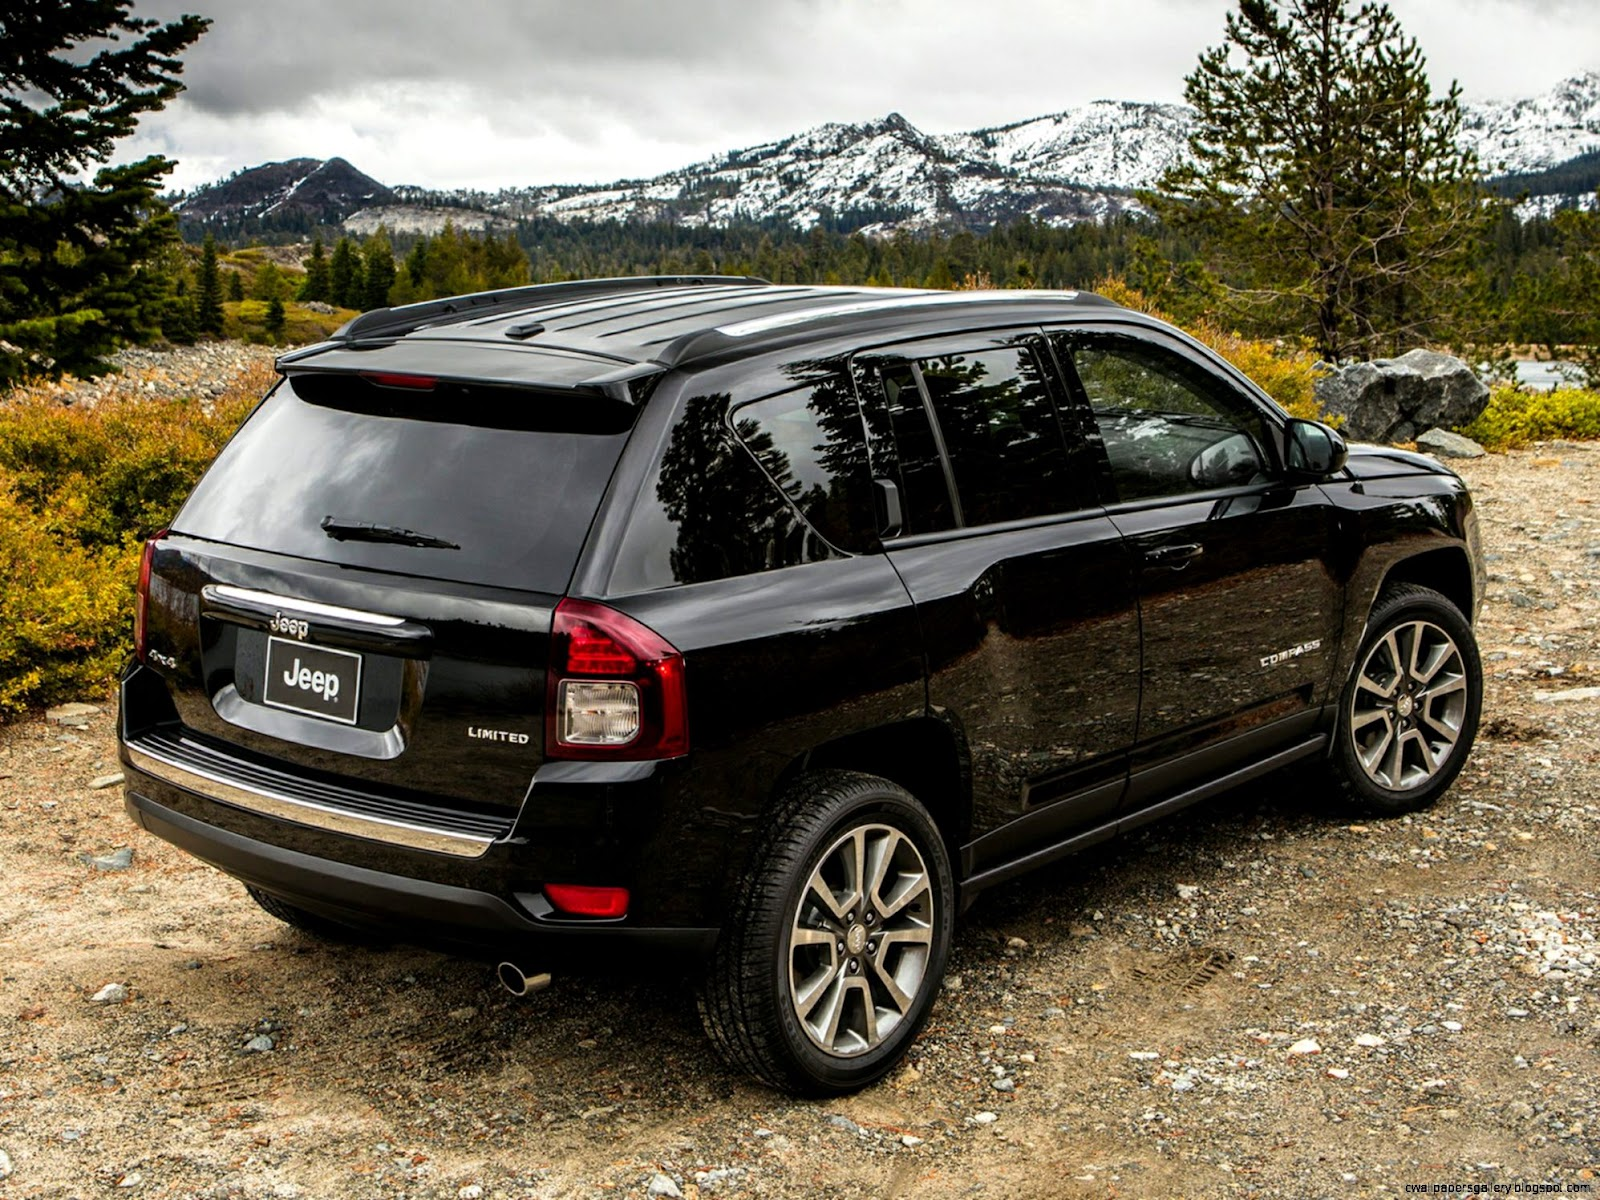 2015 Jeep Compass Wheels